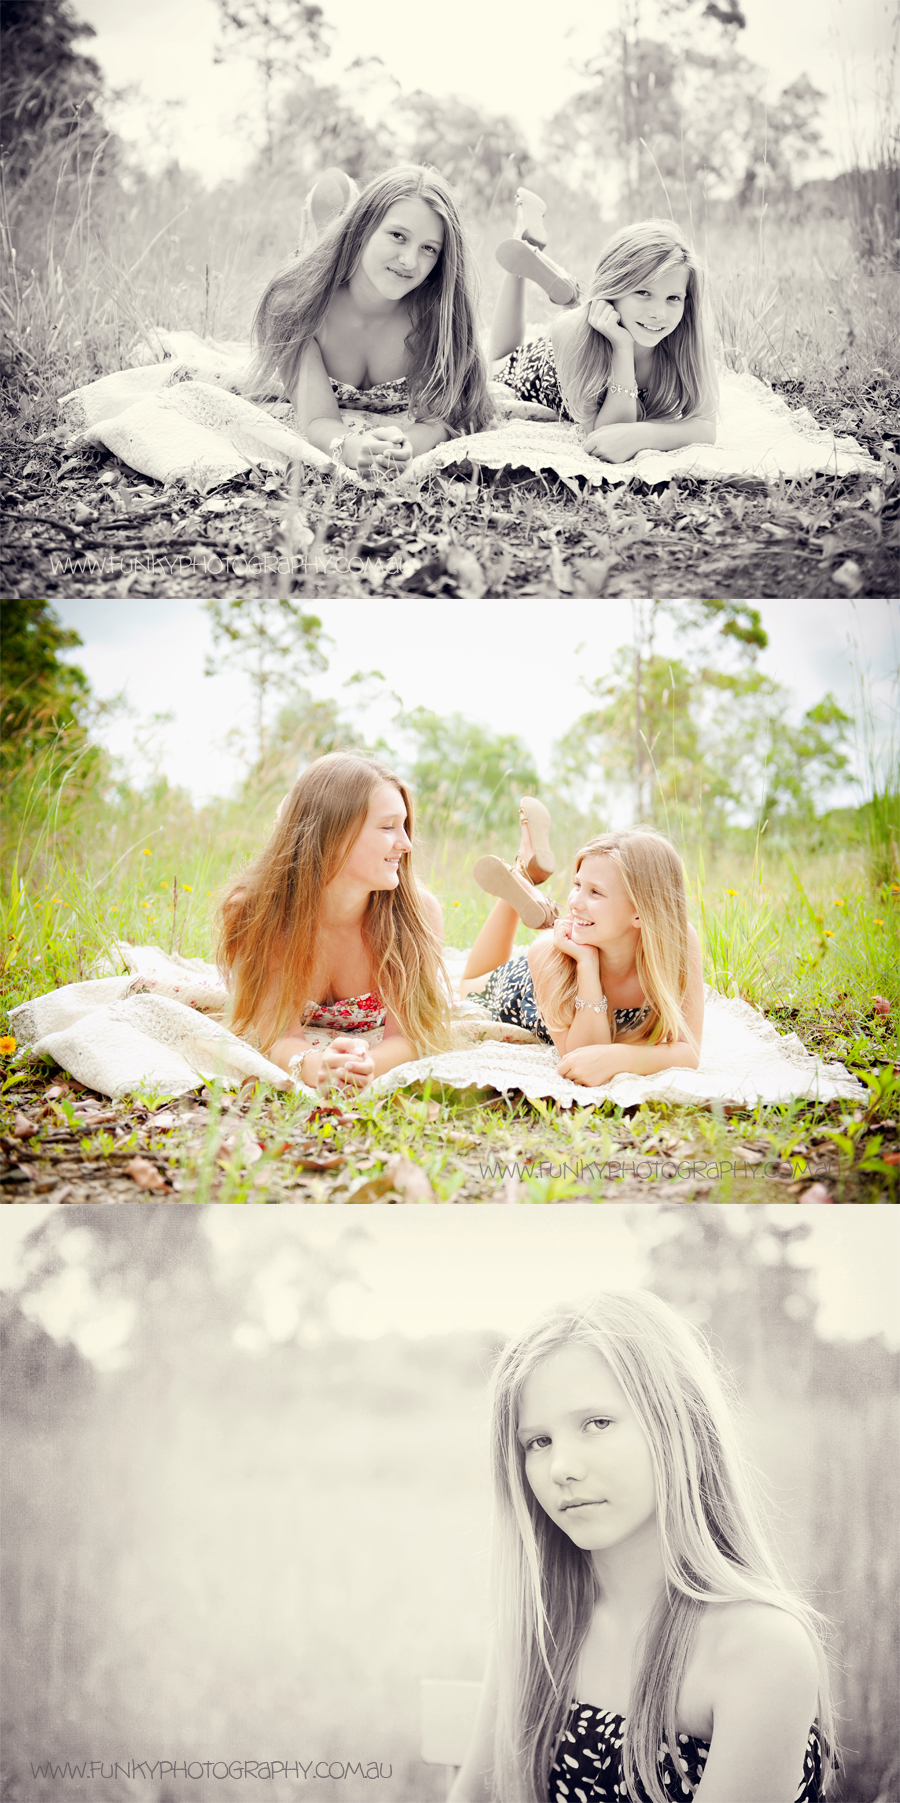 photo shoot of girls in a field with sunlight natural light photography